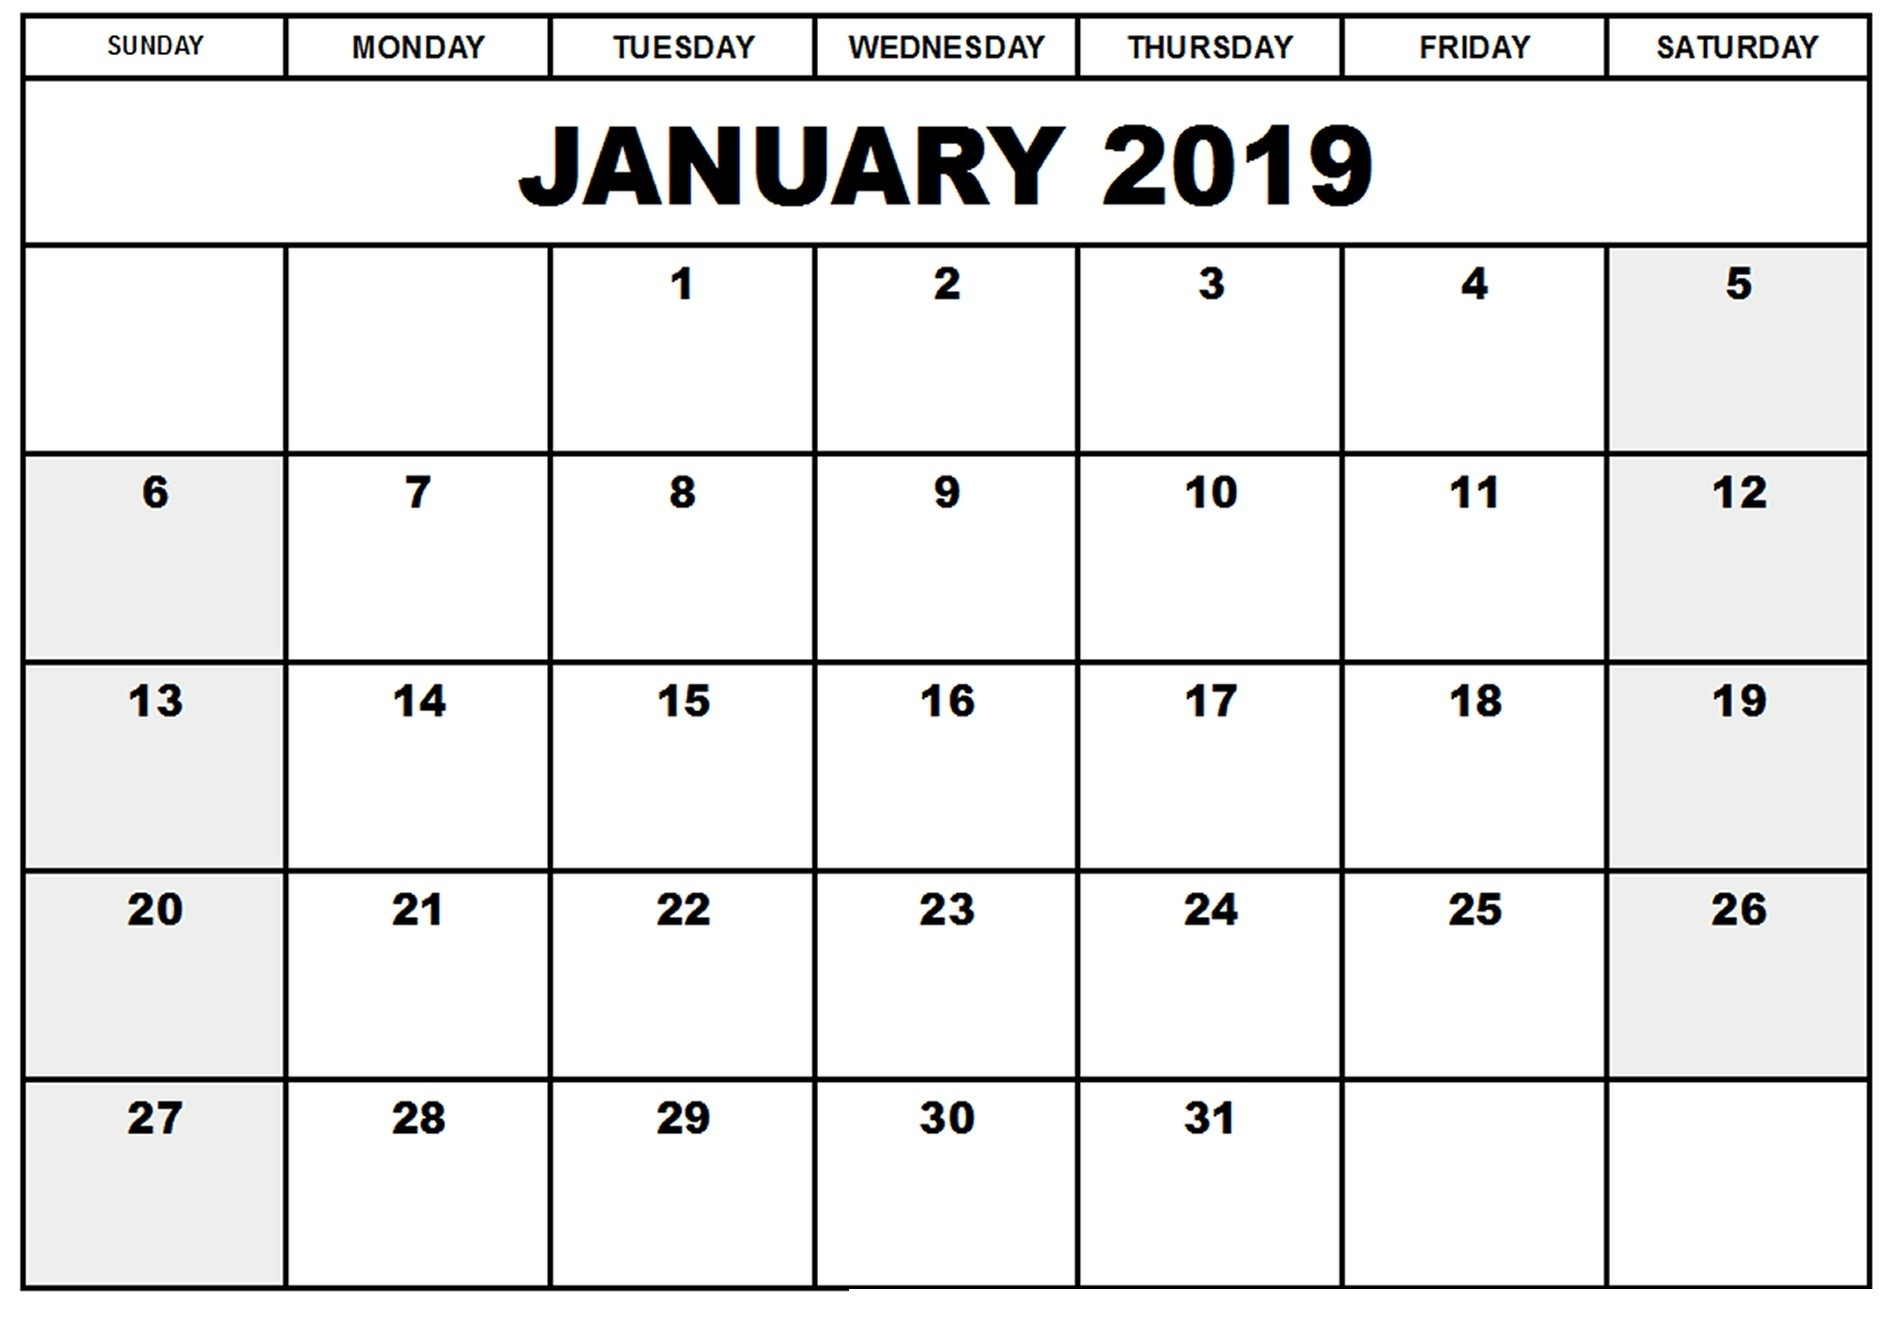 Download Kalender islam 2019 Pdf Actual Get Free Printable January 2019 Calendar with Holidays Of Download Kalender islam 2019 Pdf Más Recientemente Liberado Free Yearly Editable 2019 Calendar Pdf Template